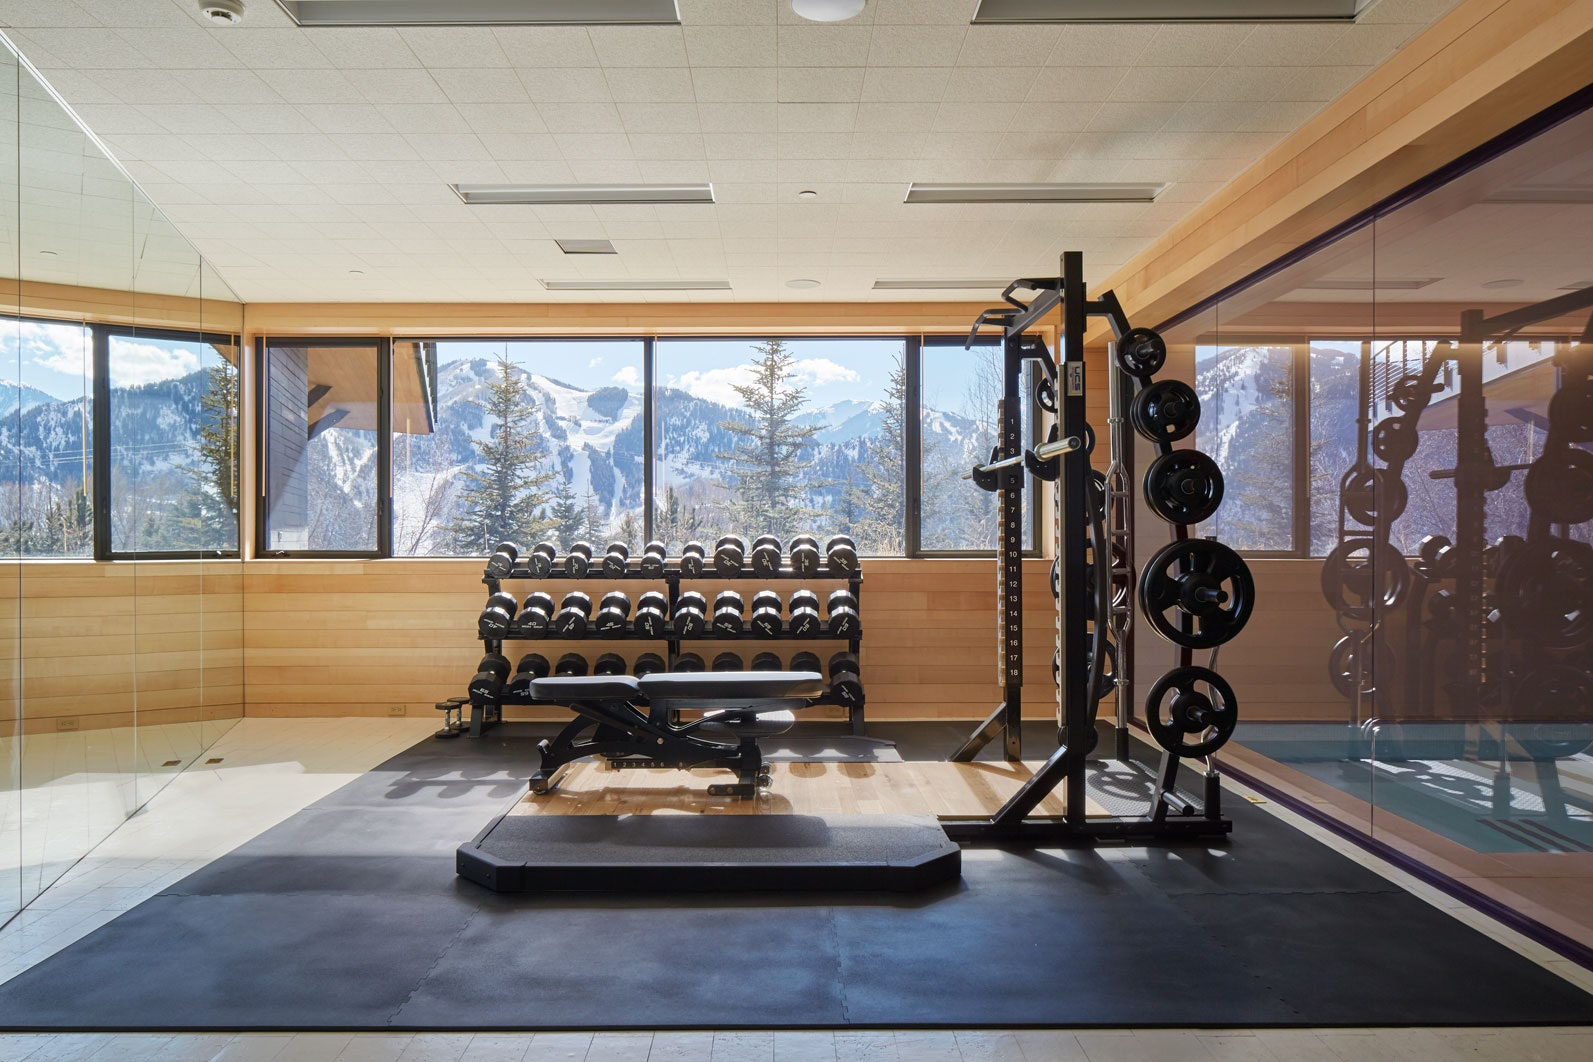 Gym-Rendering-and-what-you-can-earn-from-rendering-fitness?-8